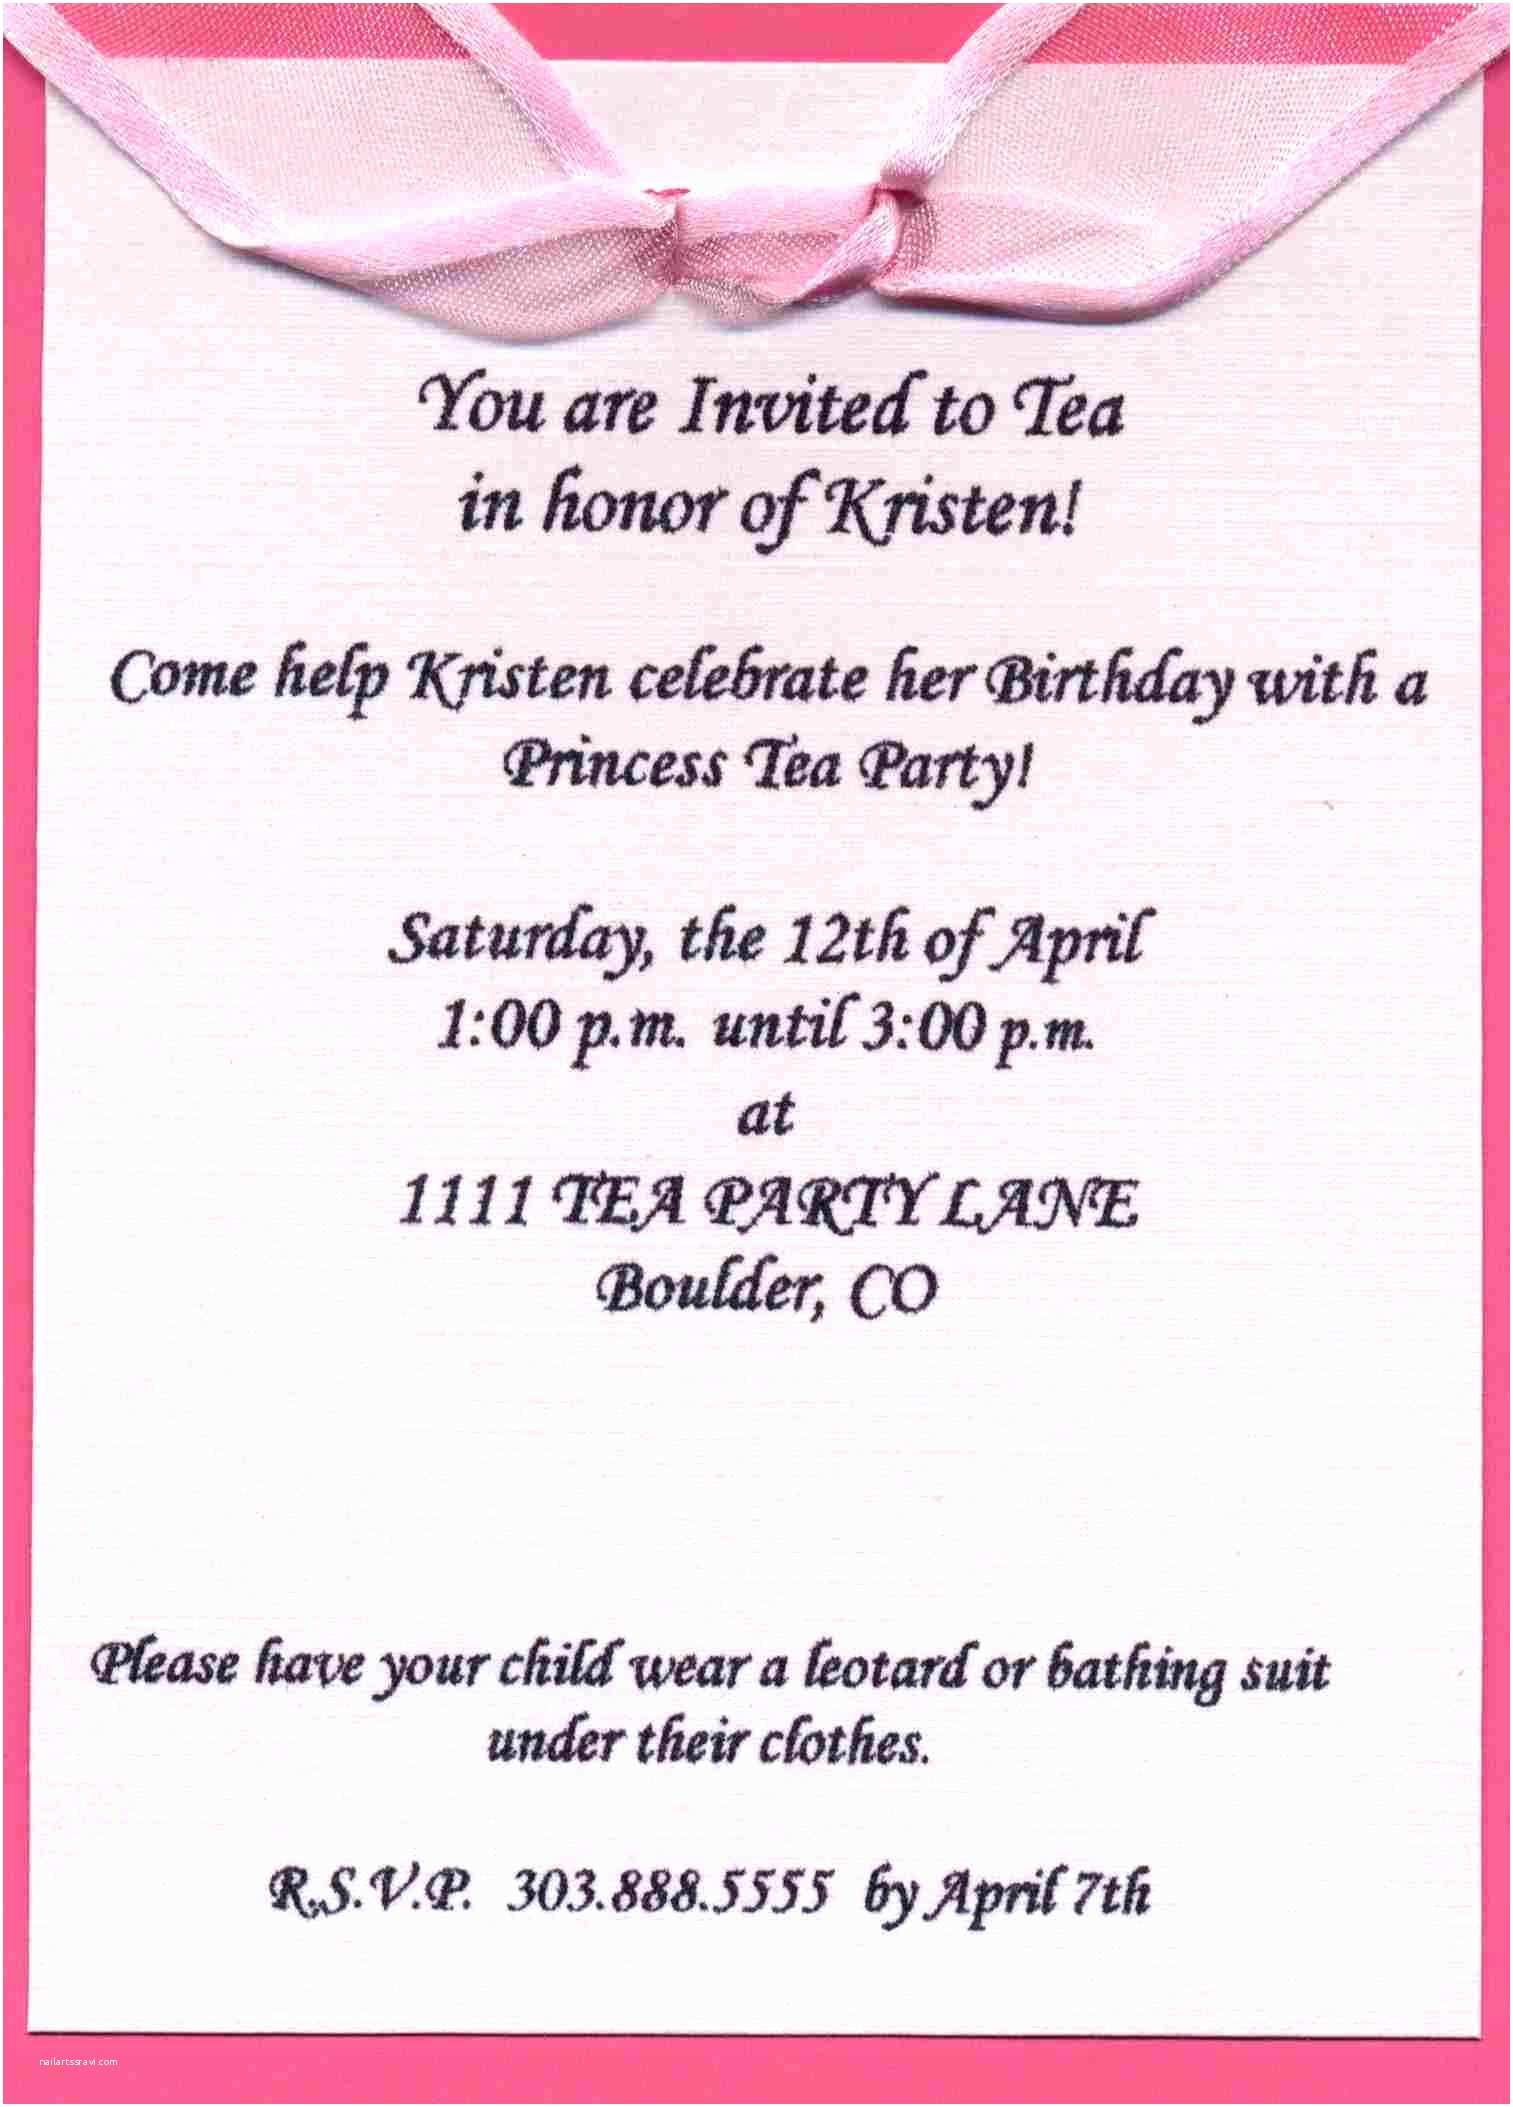 Email Birthday Invitations 40th Ideas Invitation Text Samples